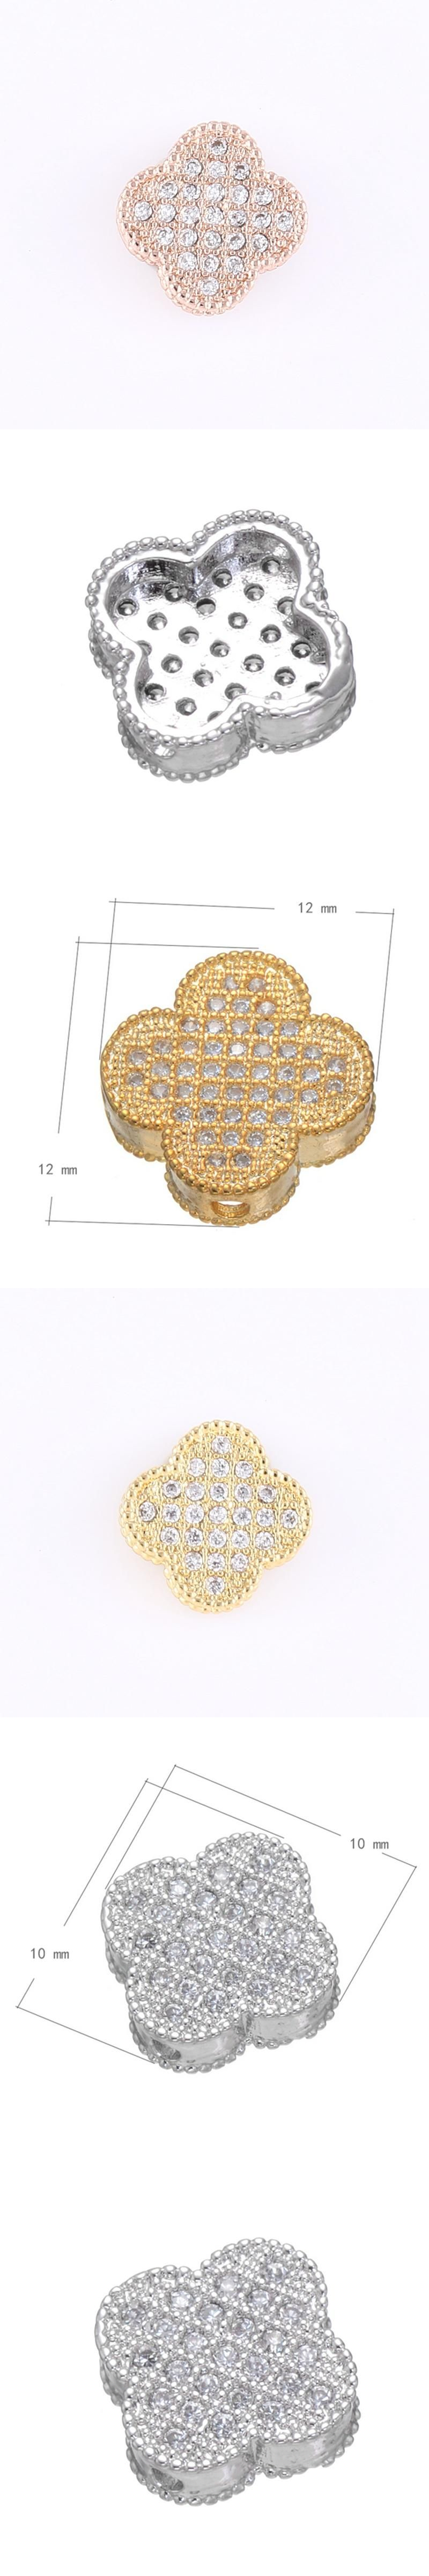 10mm12mm Gold Silver Rose Gold Color Micro Pave Rhinestone Clover